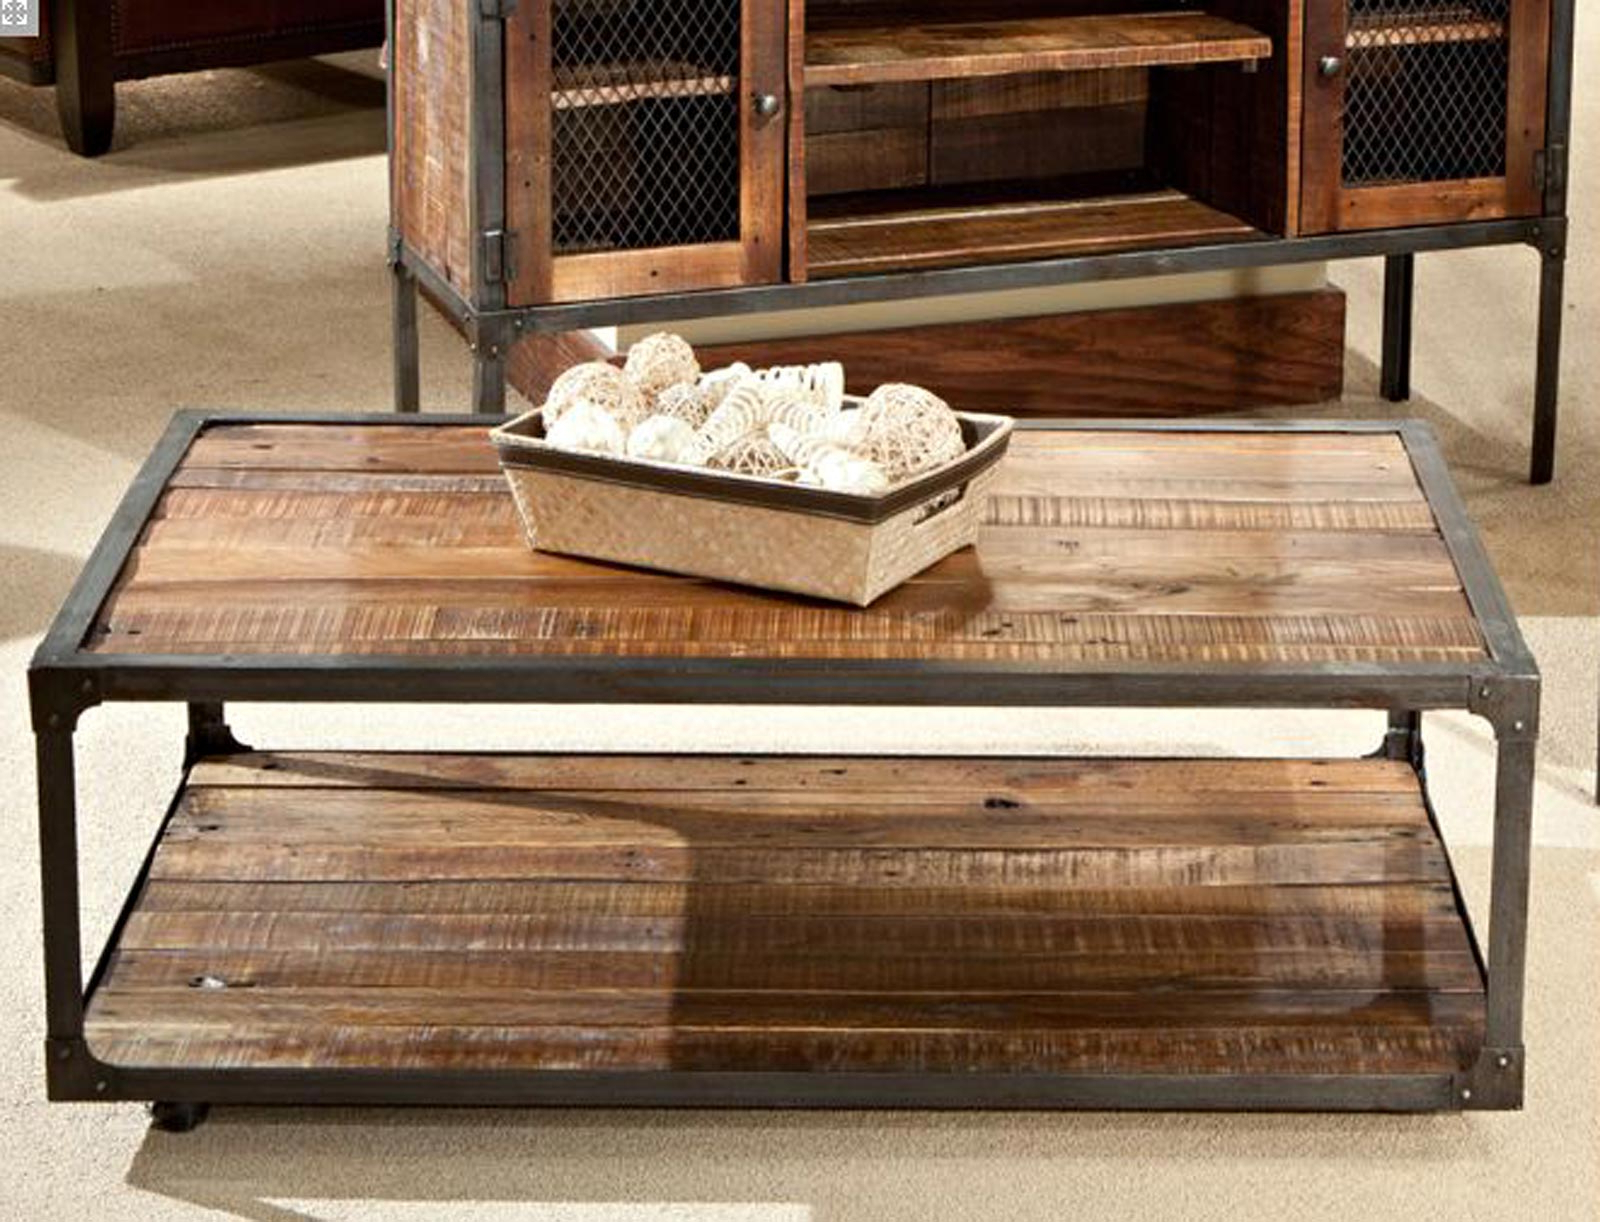 Most Recently Released Iron Wood Coffee Tables With Wheels Pertaining To Wood Metal Coffee Table Elegant Material – Thelightlaughed (View 16 of 20)